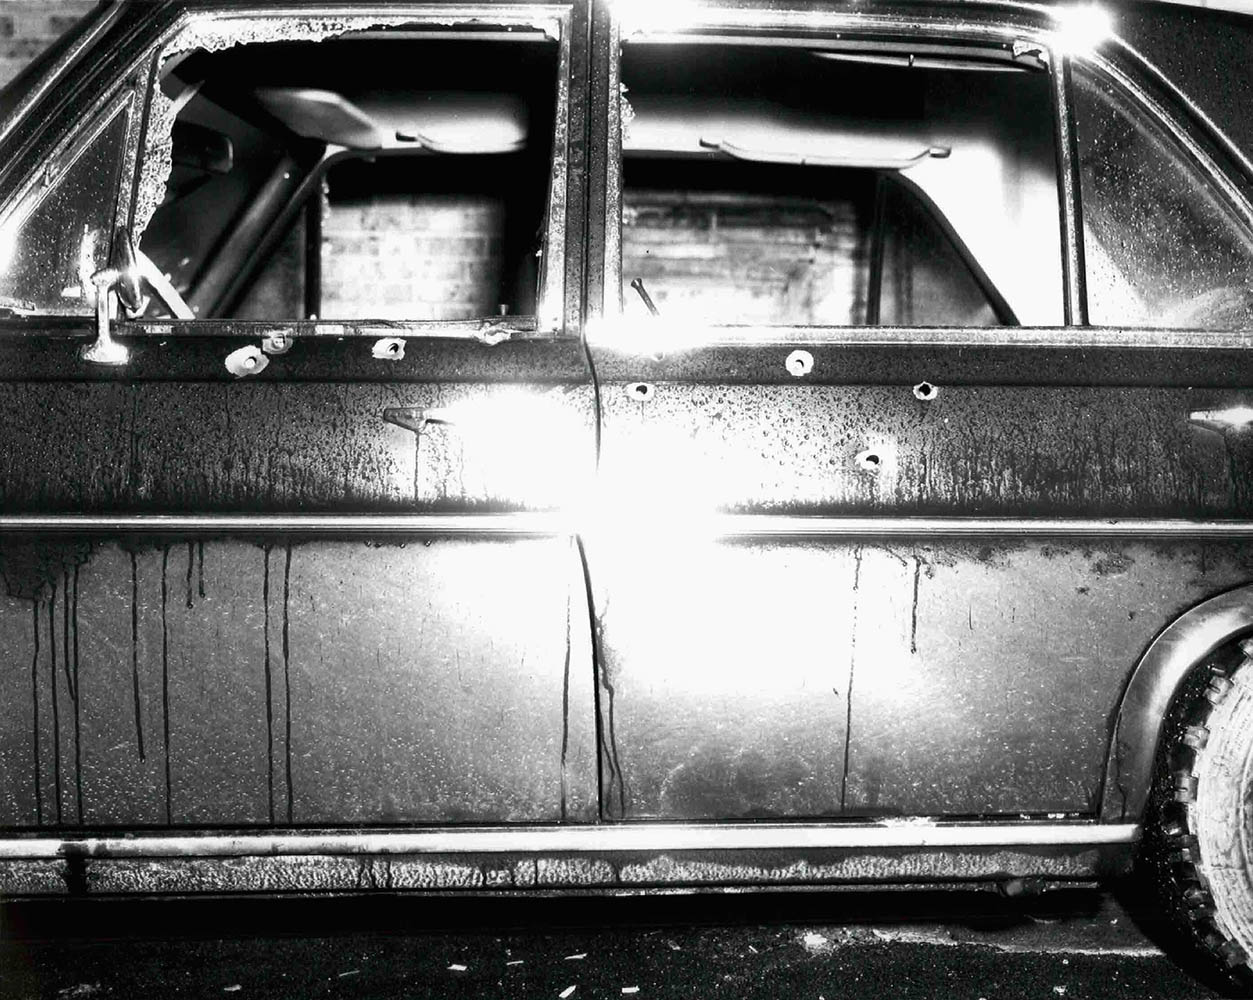 Undated. This photo provided by the U.S. Attorney's Office on June 17, 2013 shows a vehicle with bullet holes and broken glass which was shown to jurors hearing the racketeering and murder trial of accused Boston mob boss James  Whitey  Bulger.